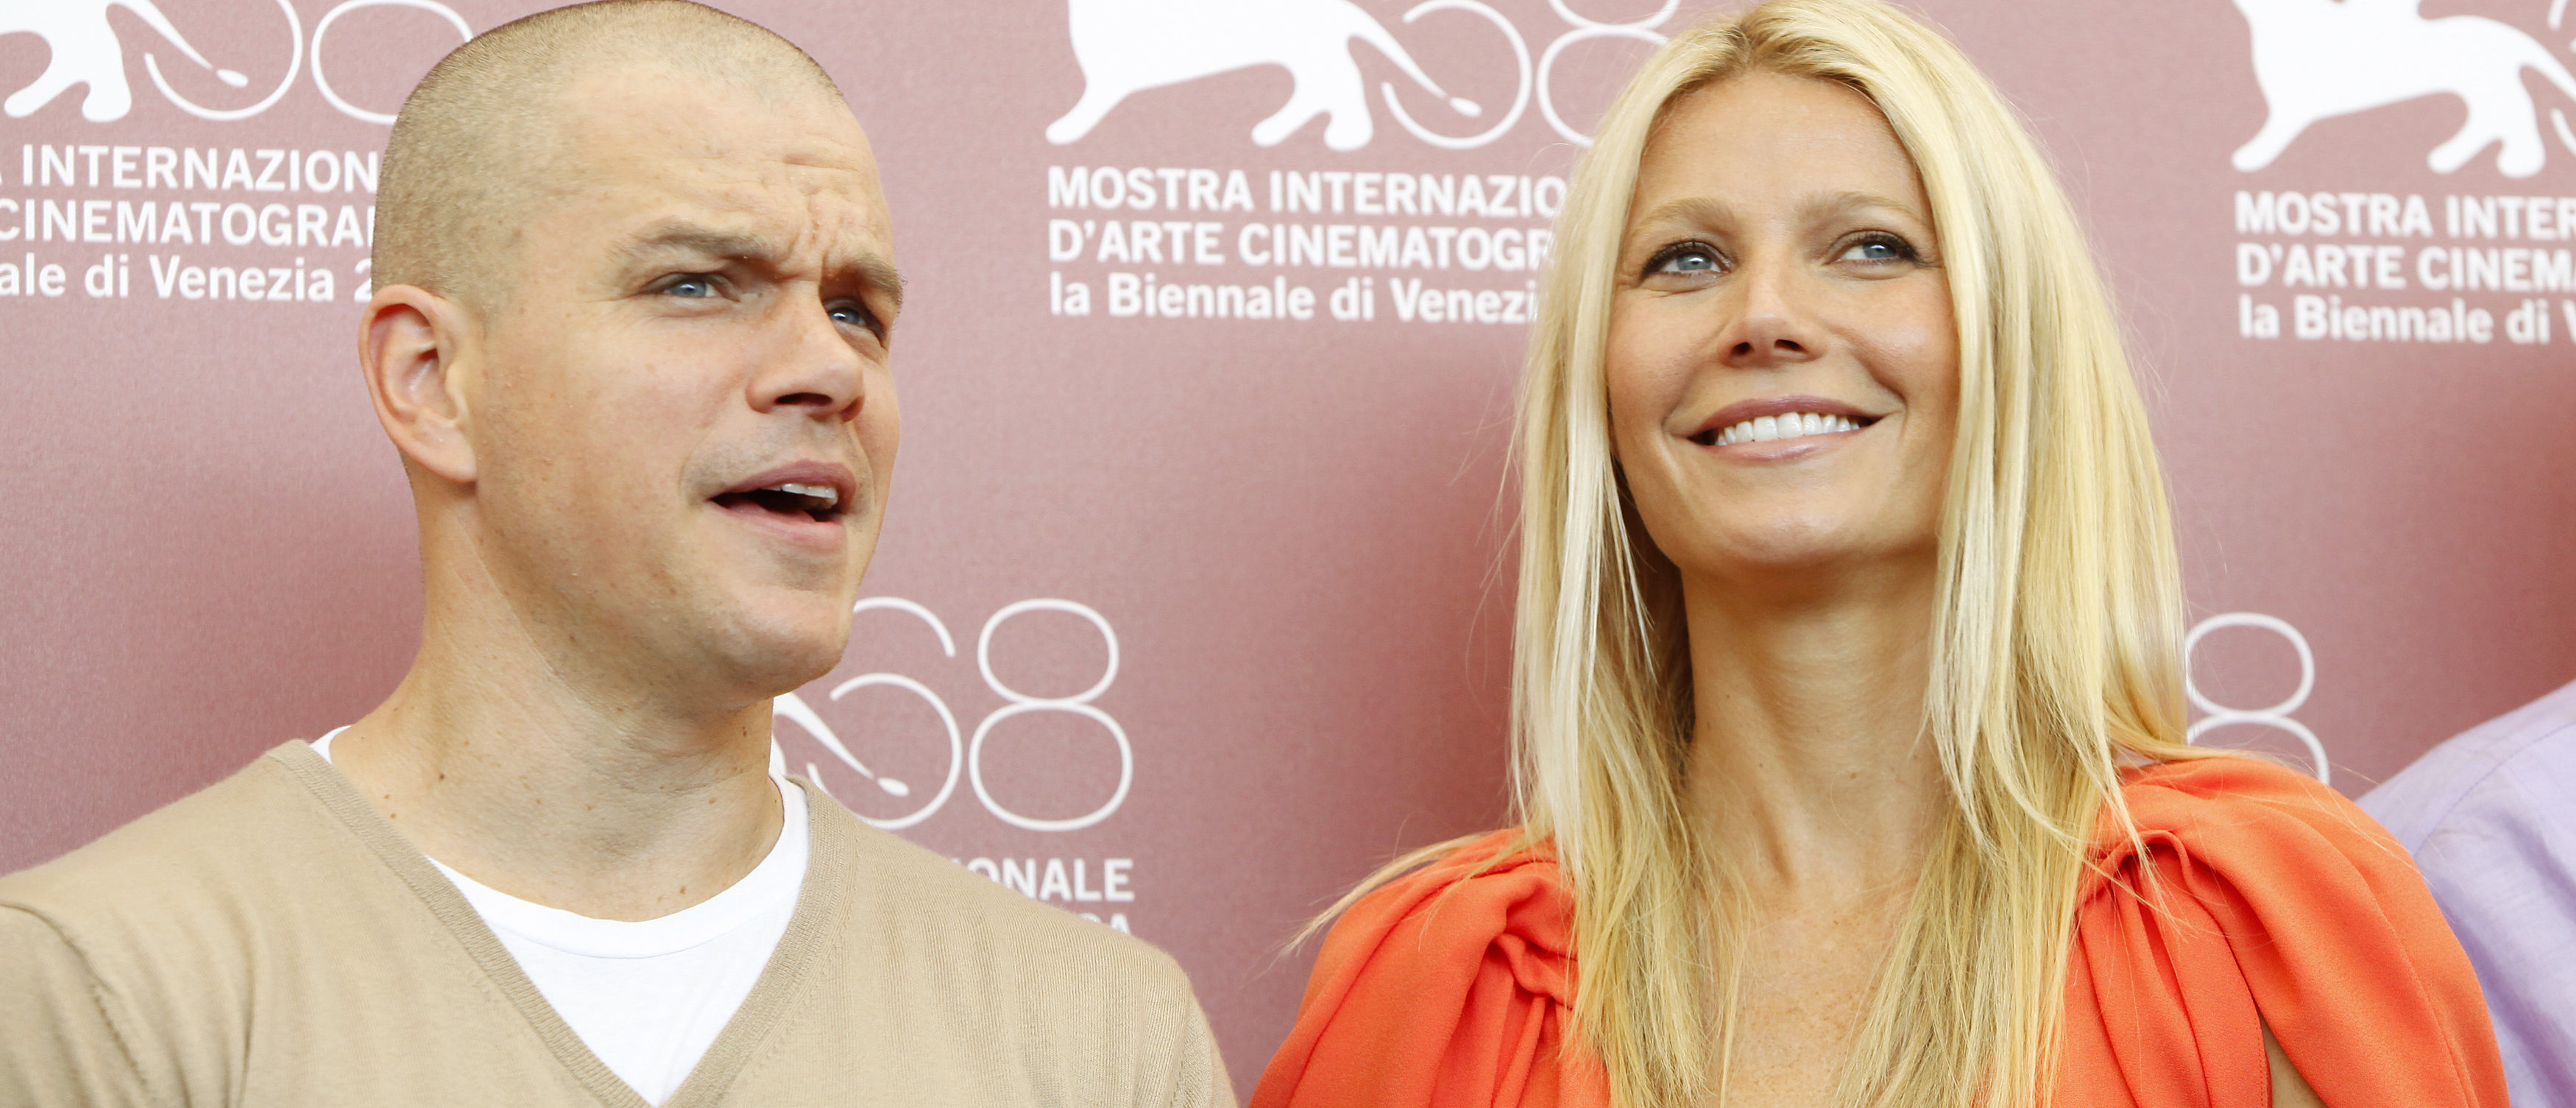 "Actors Gwyneth Paltrow (R) and Matt Damon pose during a photocall of their film ""Contagion"" at the 68th Venice Film Festival September 3, 2011. REUTERS/Alessandro Garofalo (ITALY - Tags: ENTERTAINMENT) - GM1E7931NT401 (Shutterstock)"